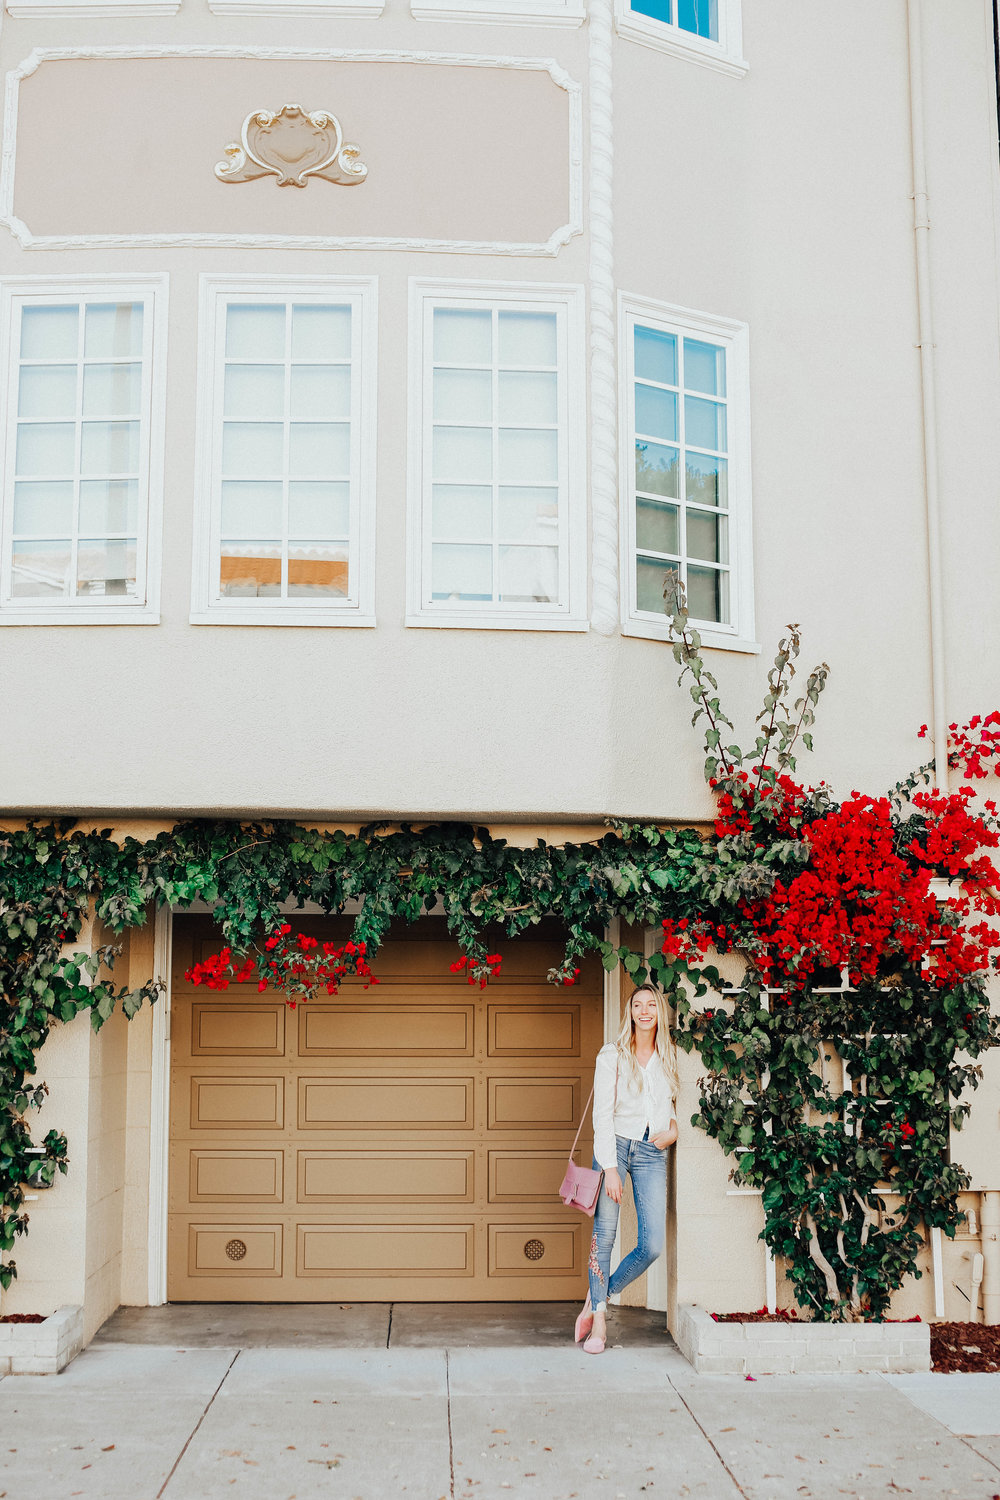 San Francisco Flower Covered Homes | @maevestier